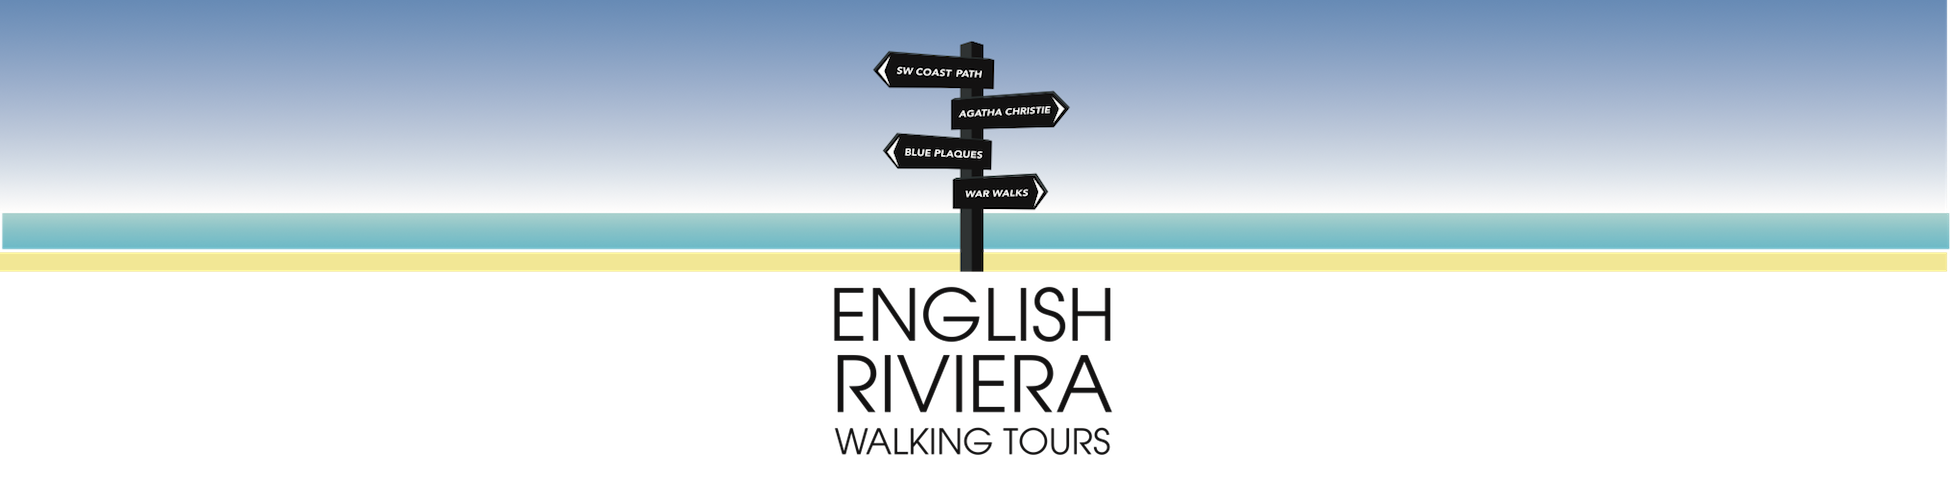 English Riviera Walking Tours Footer Logo